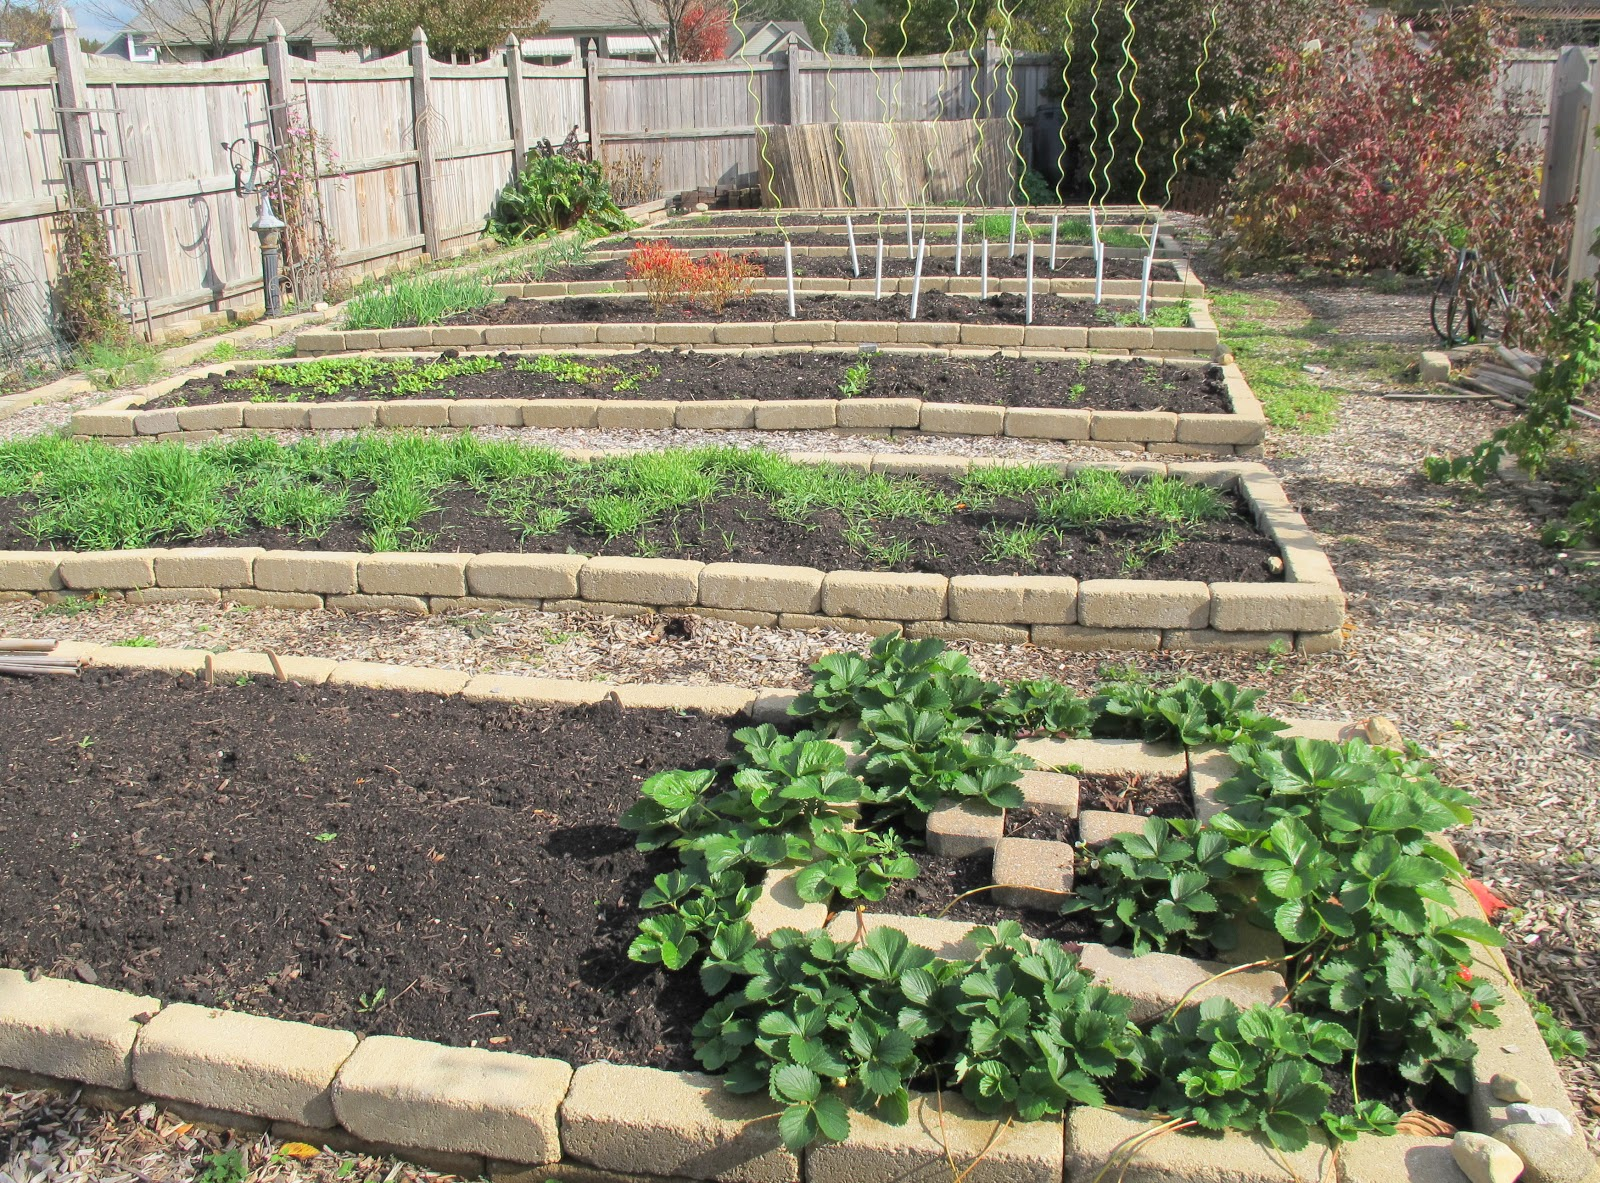 Vegetable garden quotes quotesgram for Garden layout ideas